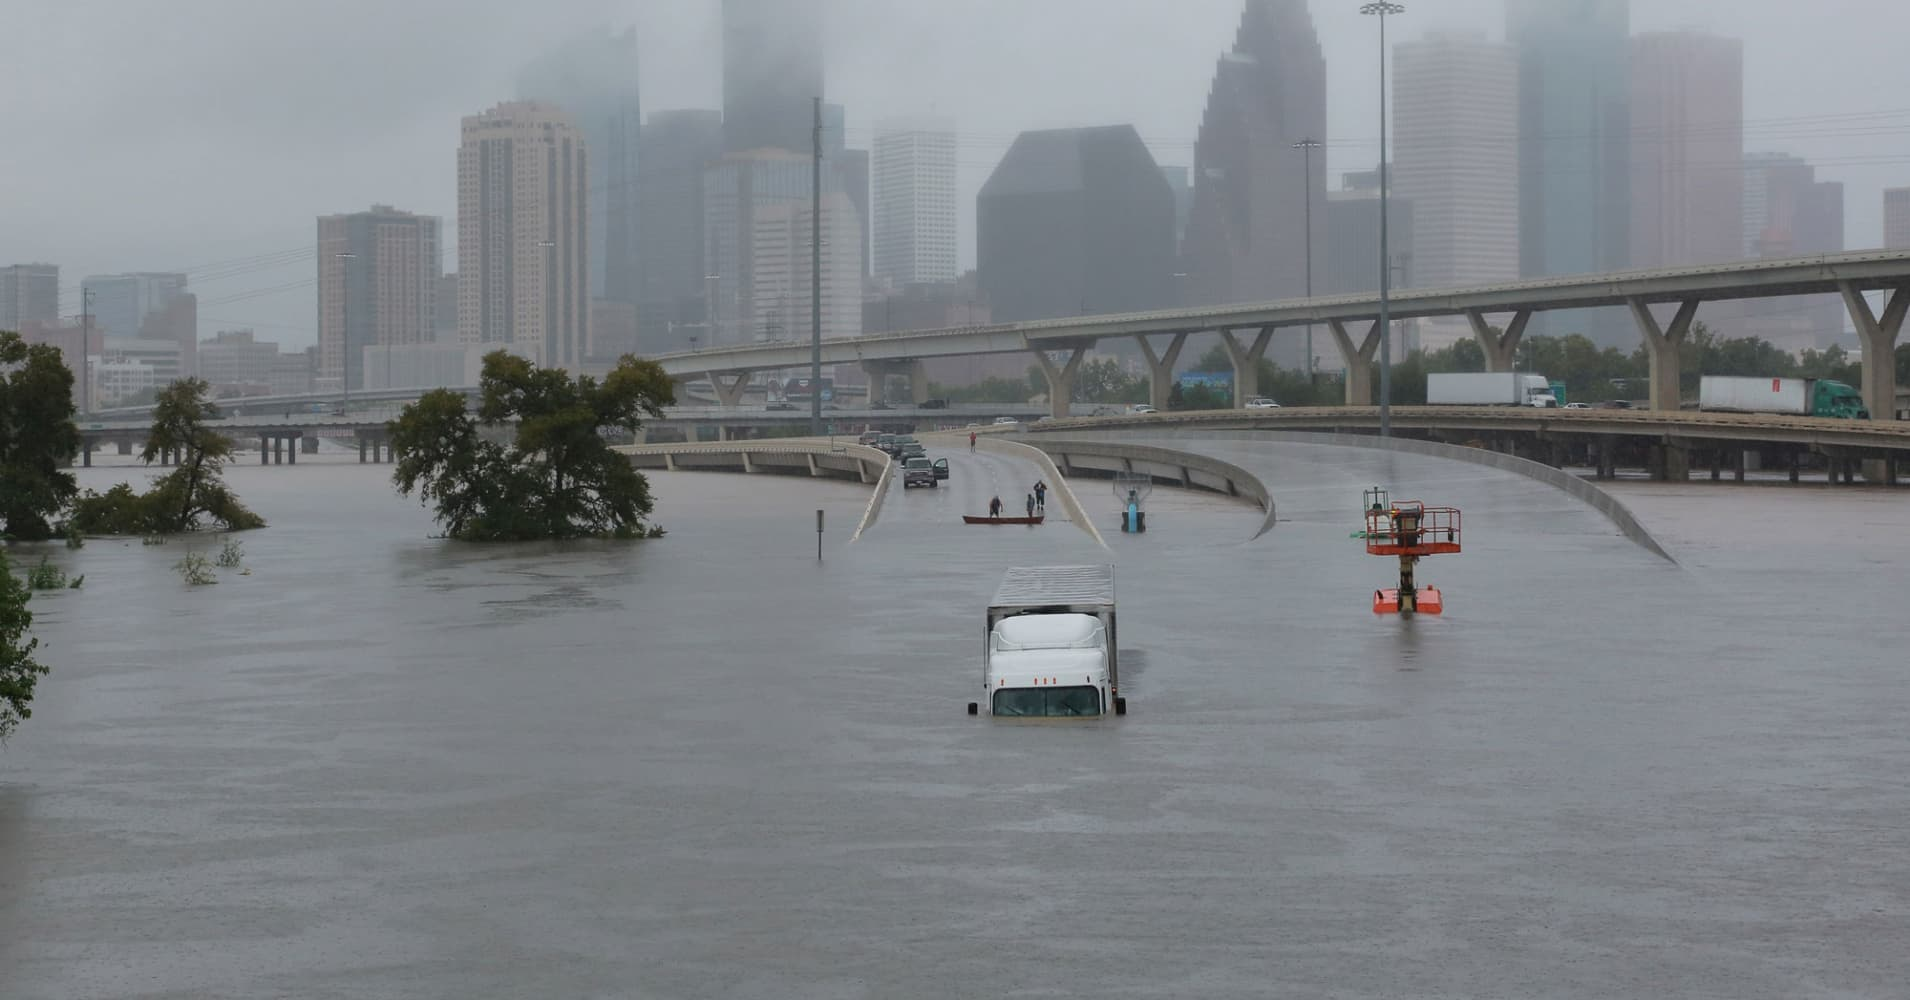 The stunning images from record-setting flooding in ...